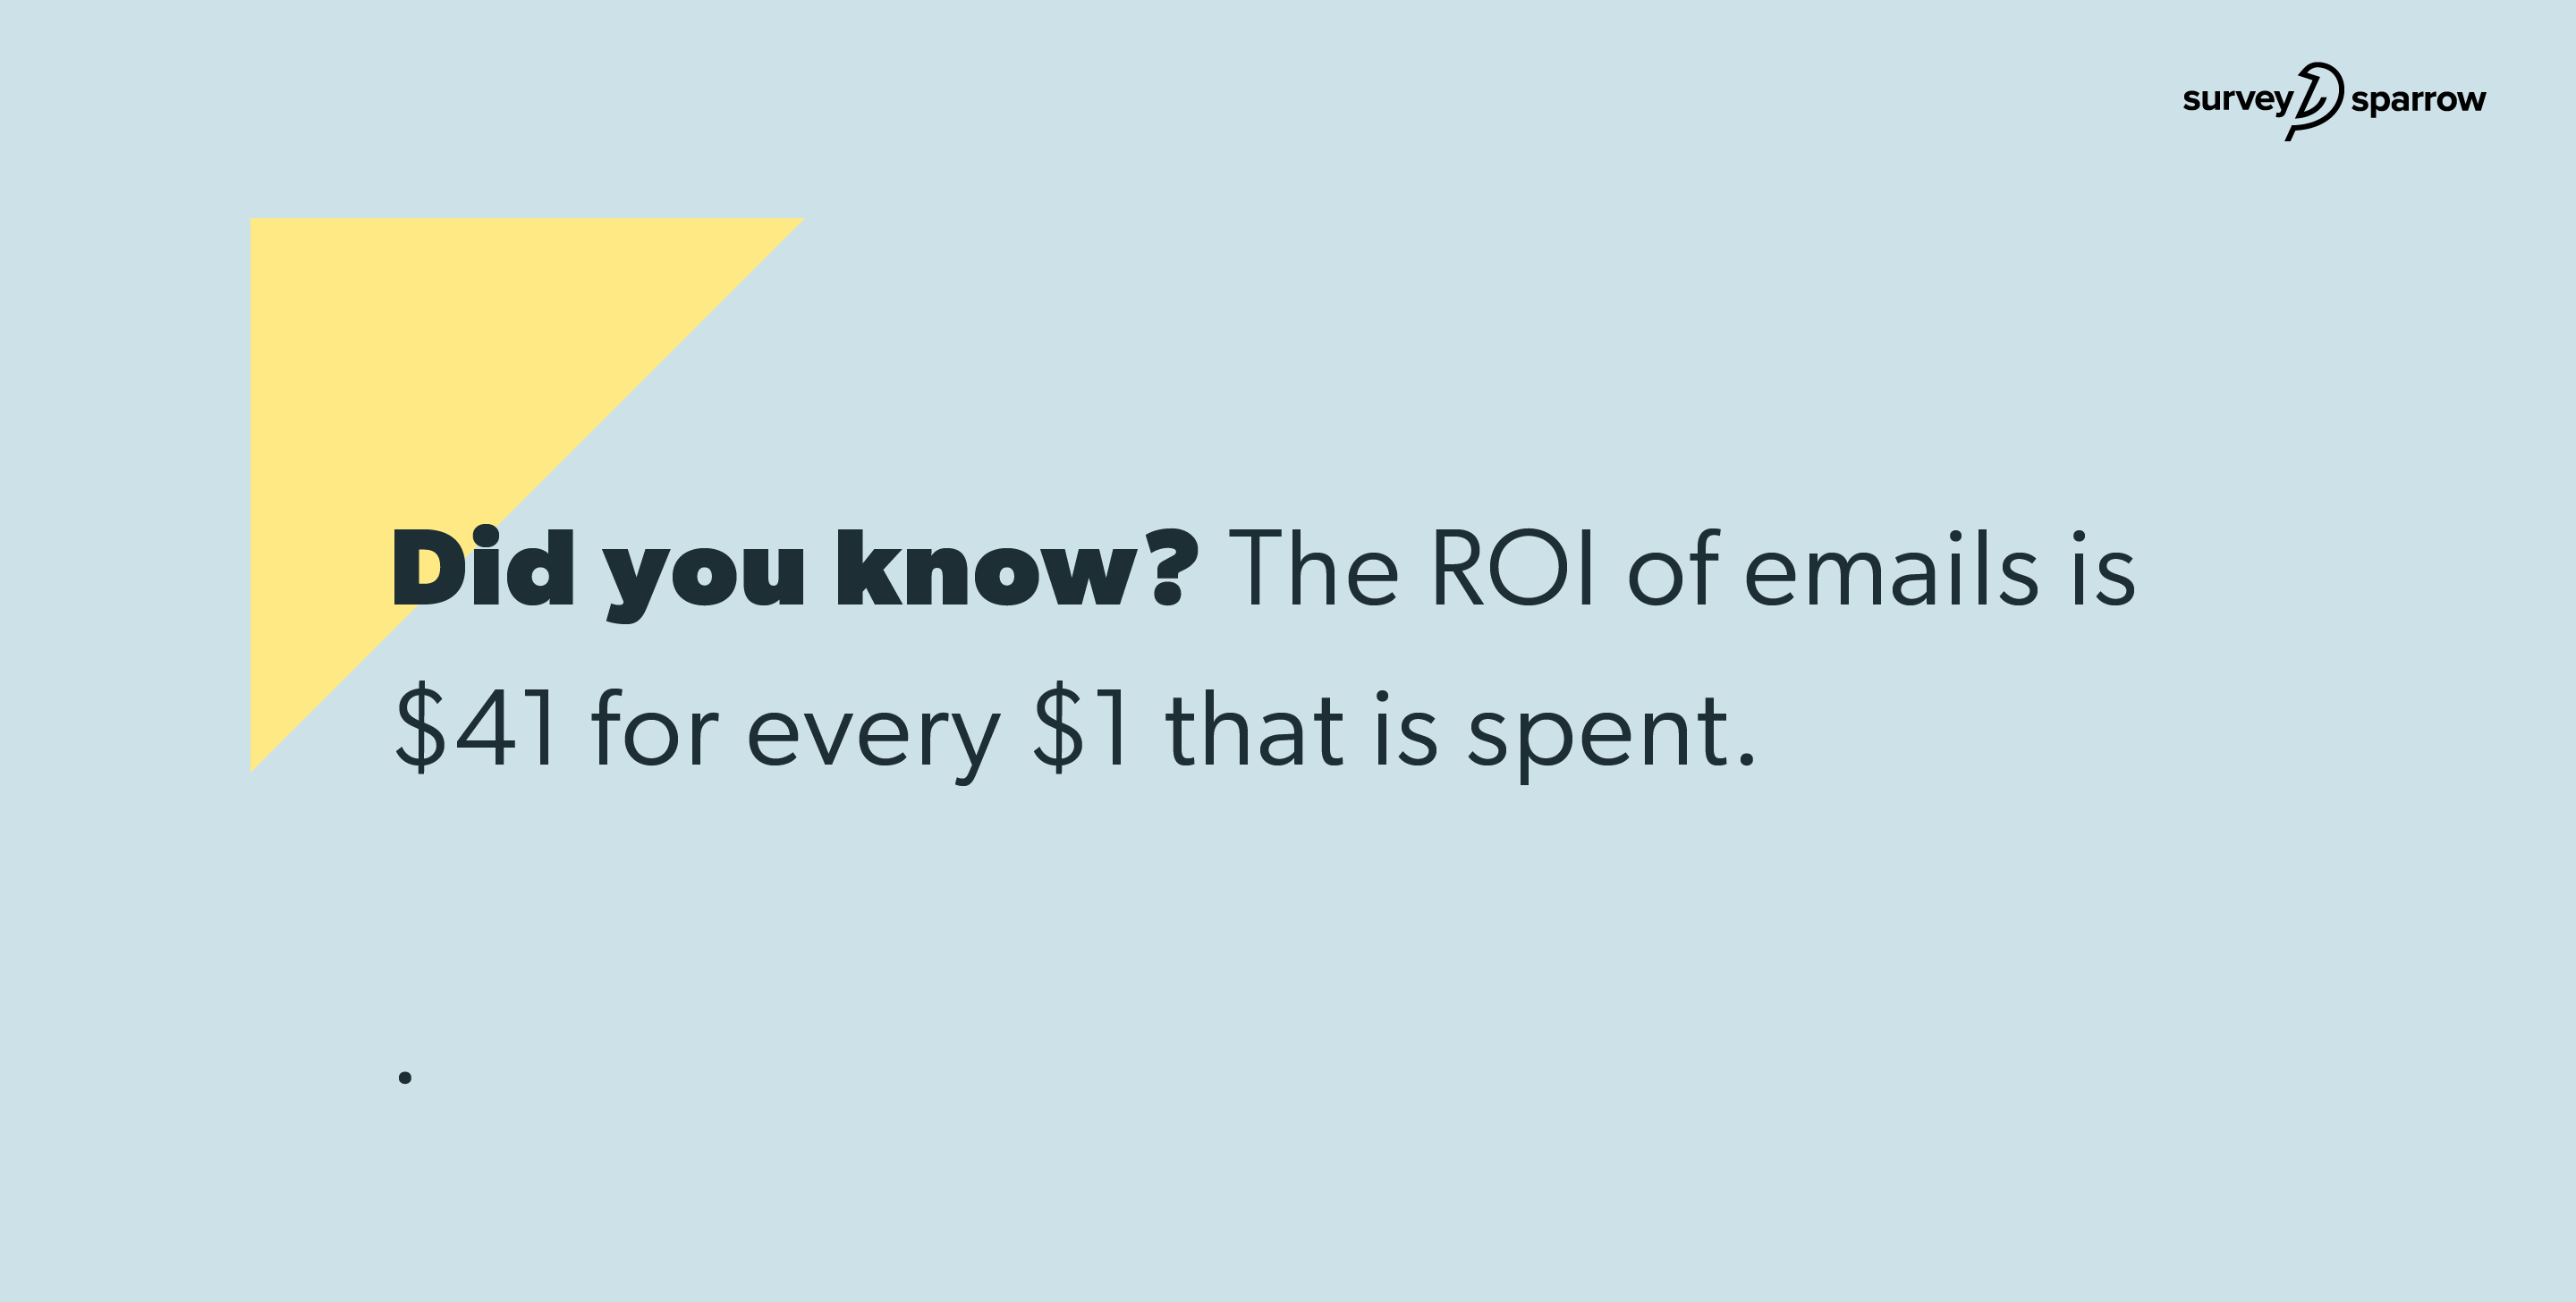 lead generation strategy - ROI of Emails